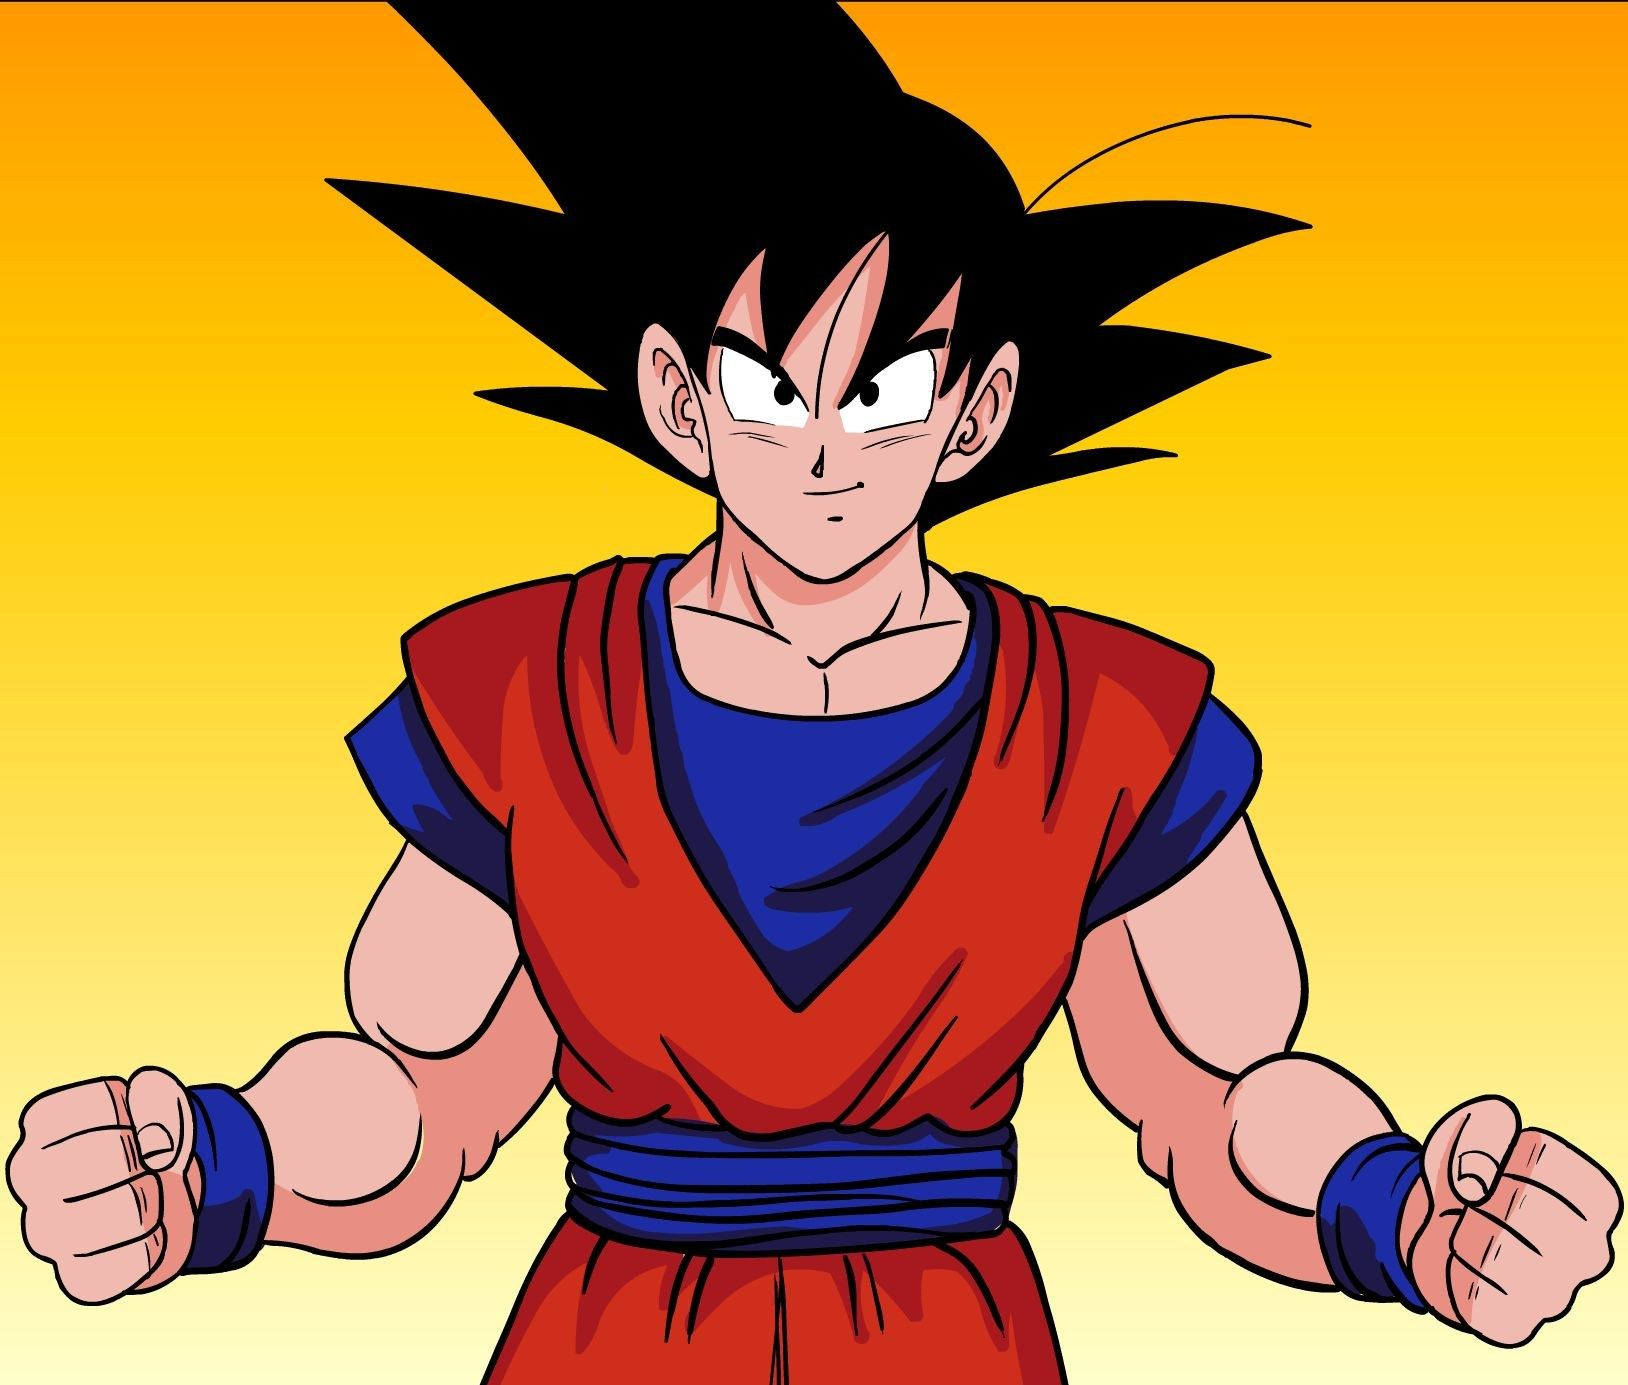 Dragon Ball Goku HD Image Wallpaper For PC